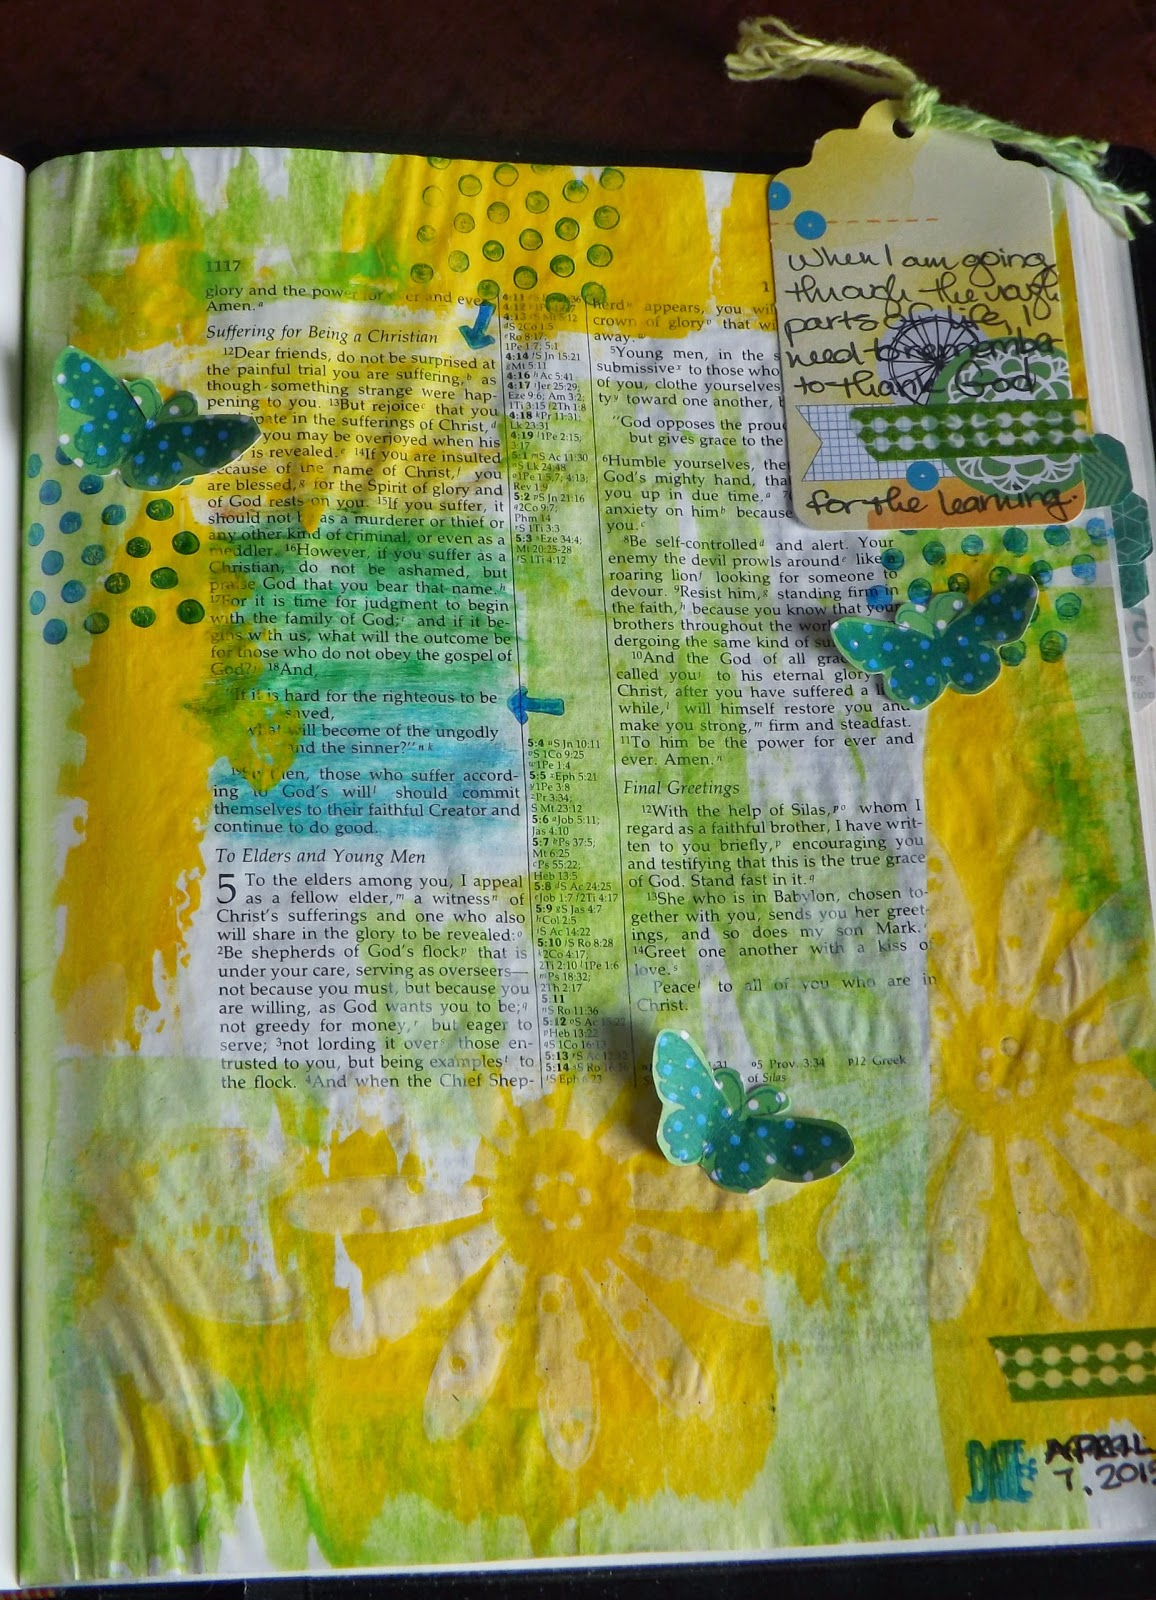 Art journaling Bible page inspired by 1 Peter 4: 12-13 with acrylic paint in green and yellow.